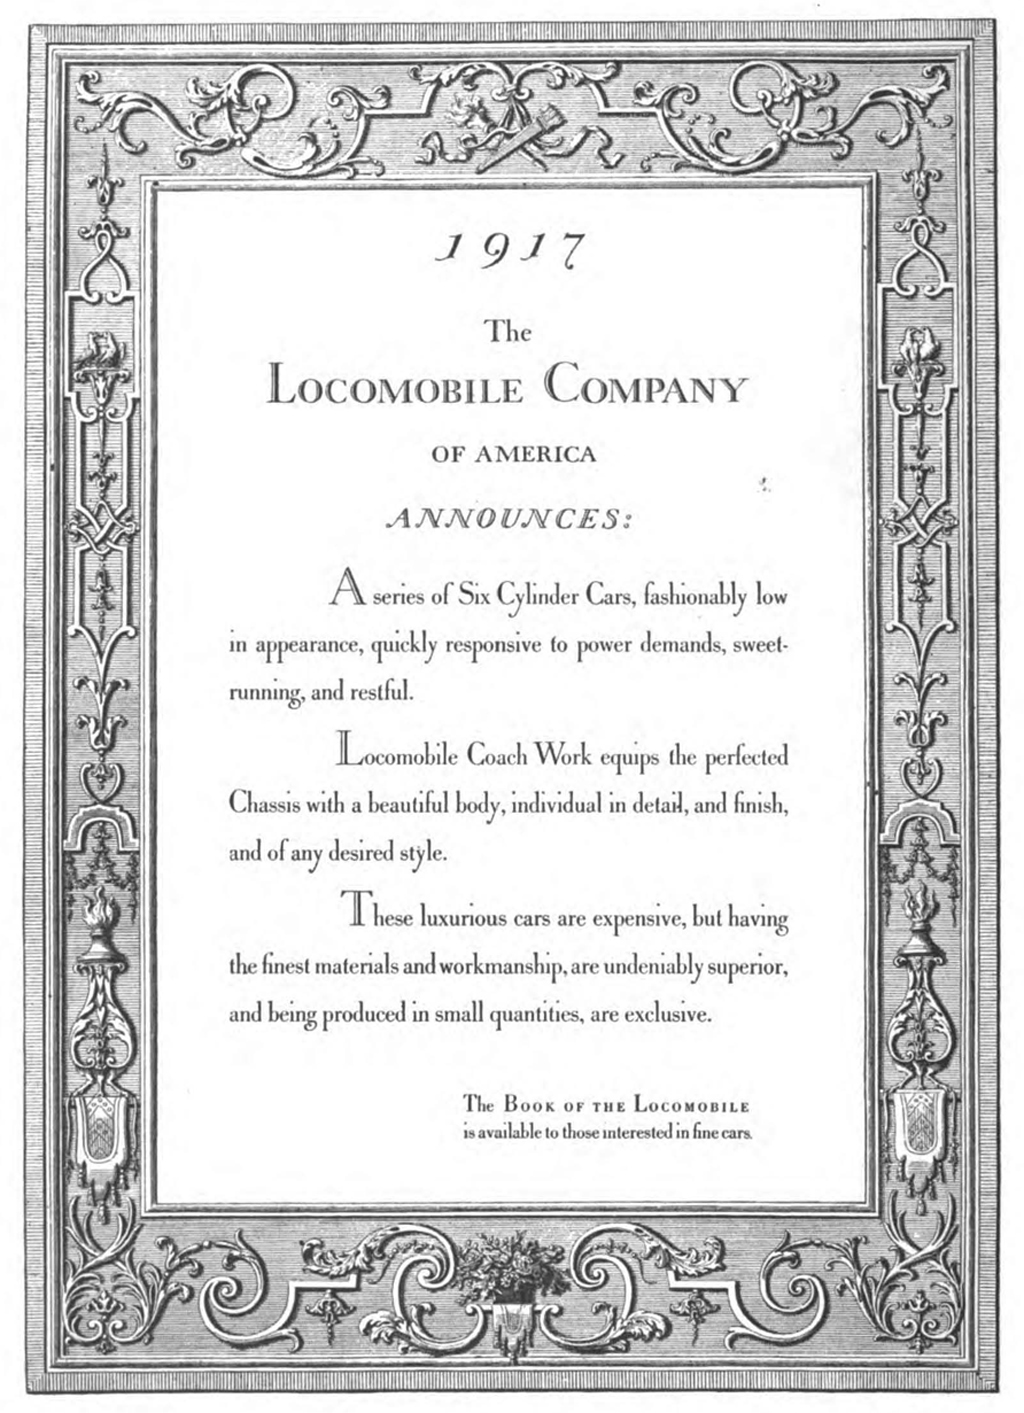 Locomobile advertisement (1917). Designed by T.M. Cleland with lettering by Bruce Rogers. Reproduced in The Printing Art vol. XXVII, no. 6 (August 1916), p. 550.